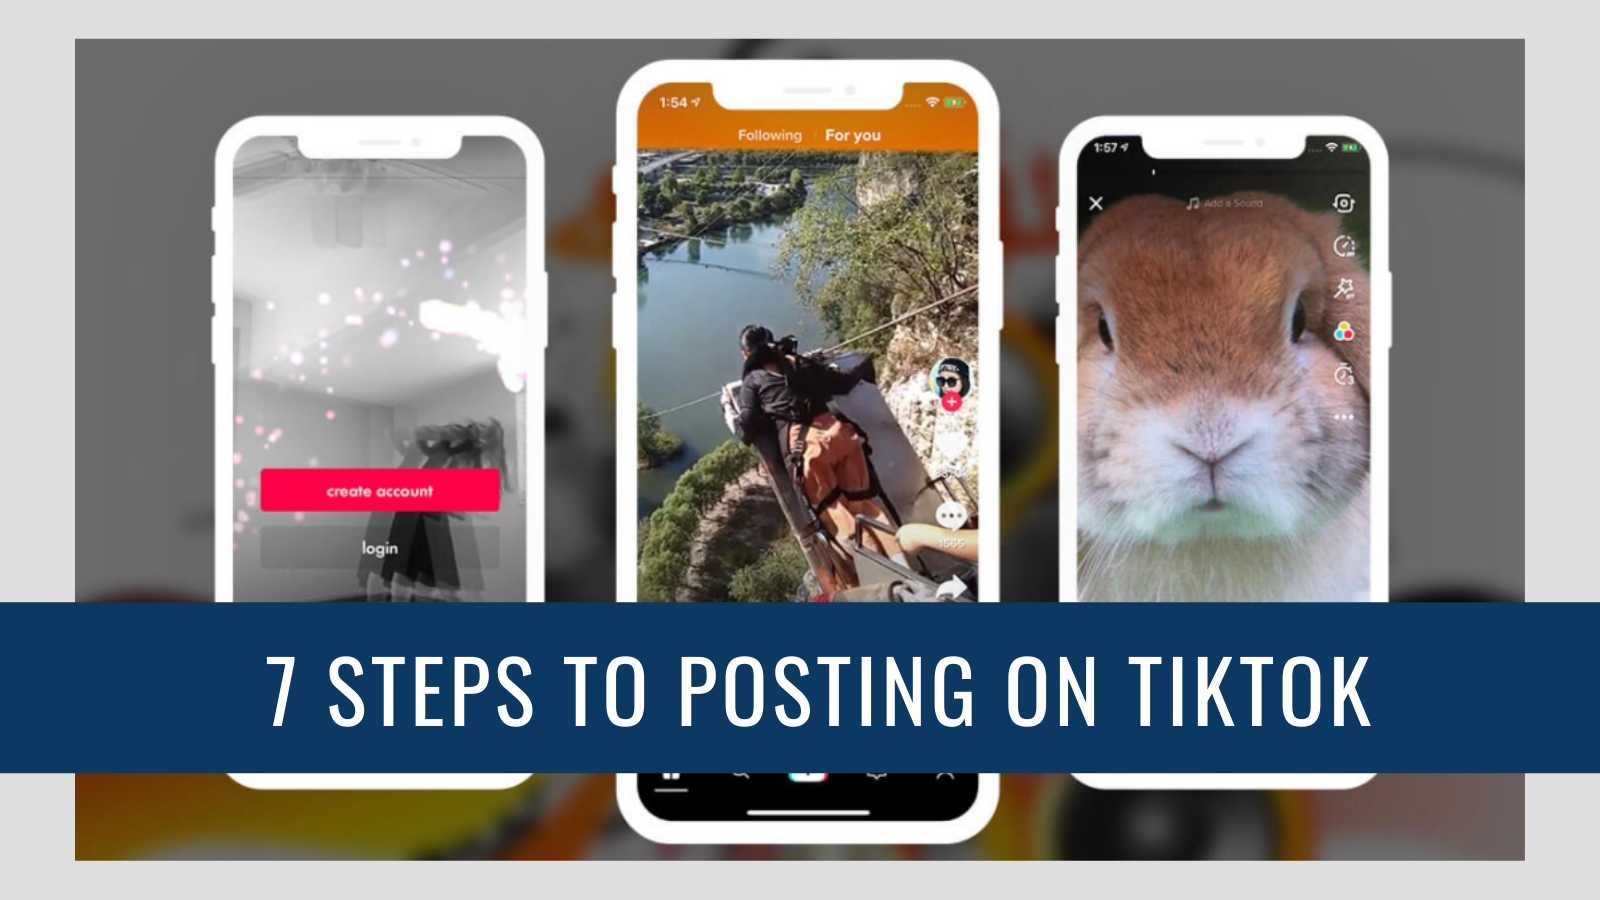 Three images of TikTok interface